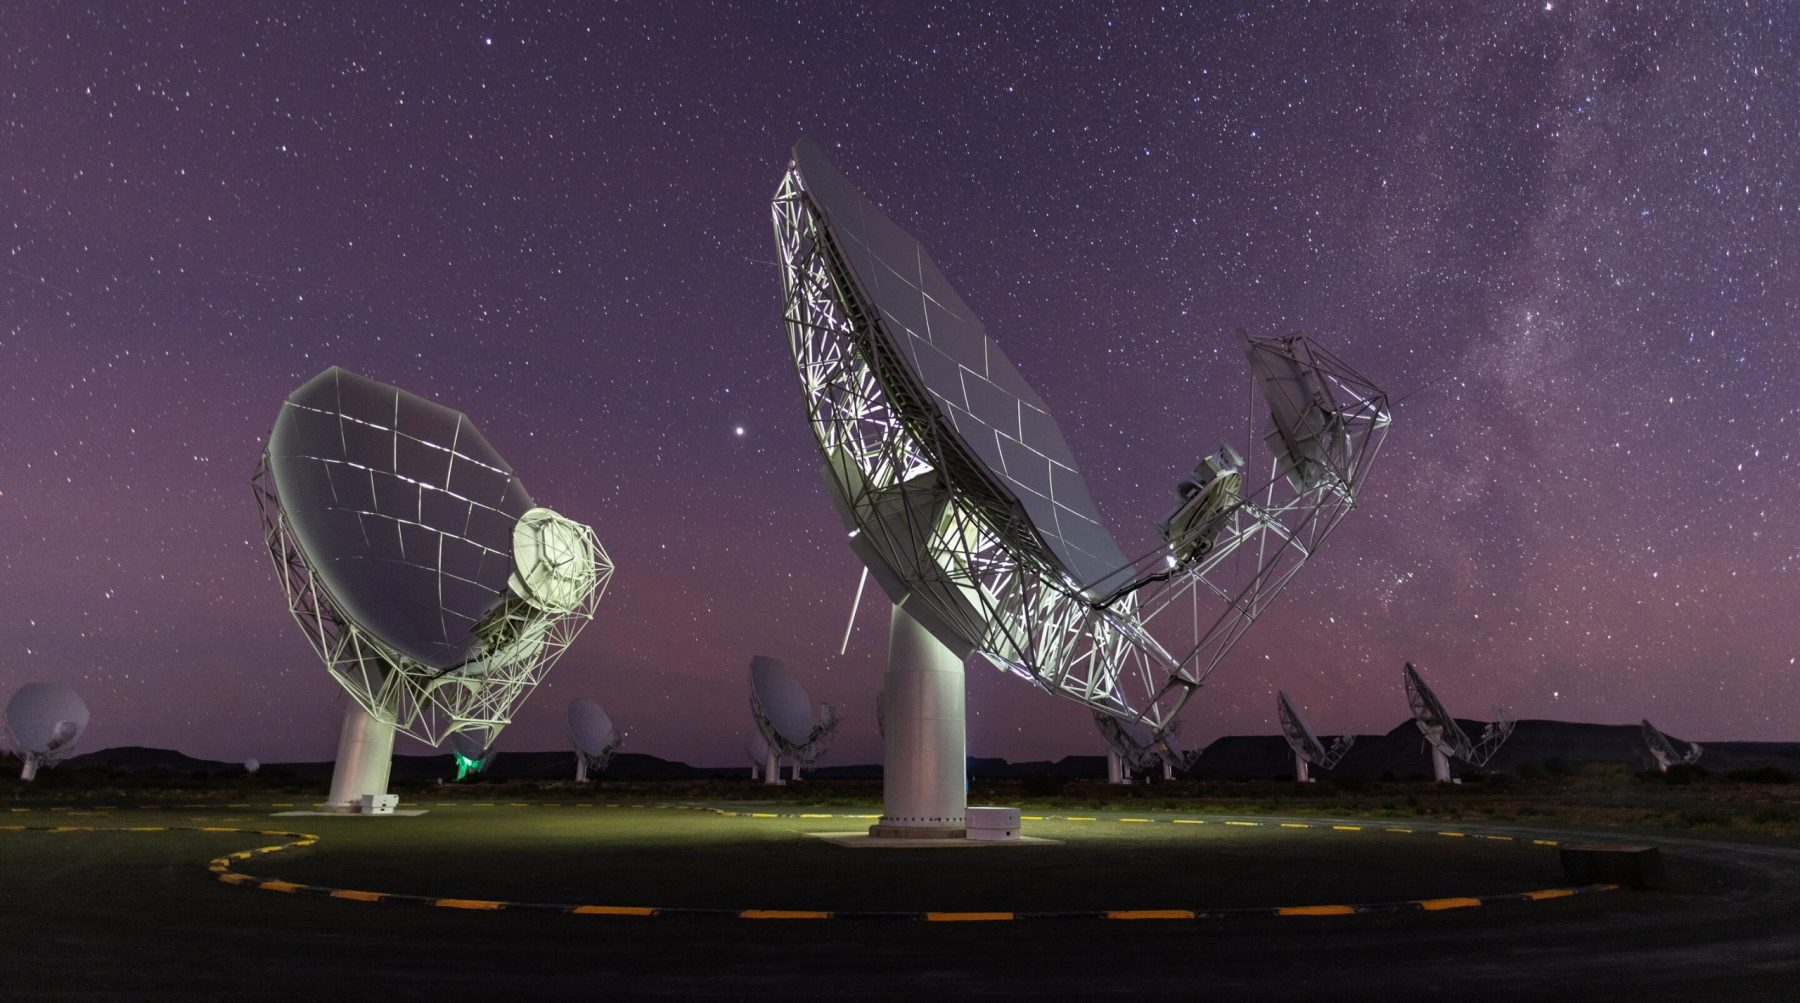 Radio telescopes that are part of MeerKAT. Credit: South African Radio Astronomy Observatory (SARAO)